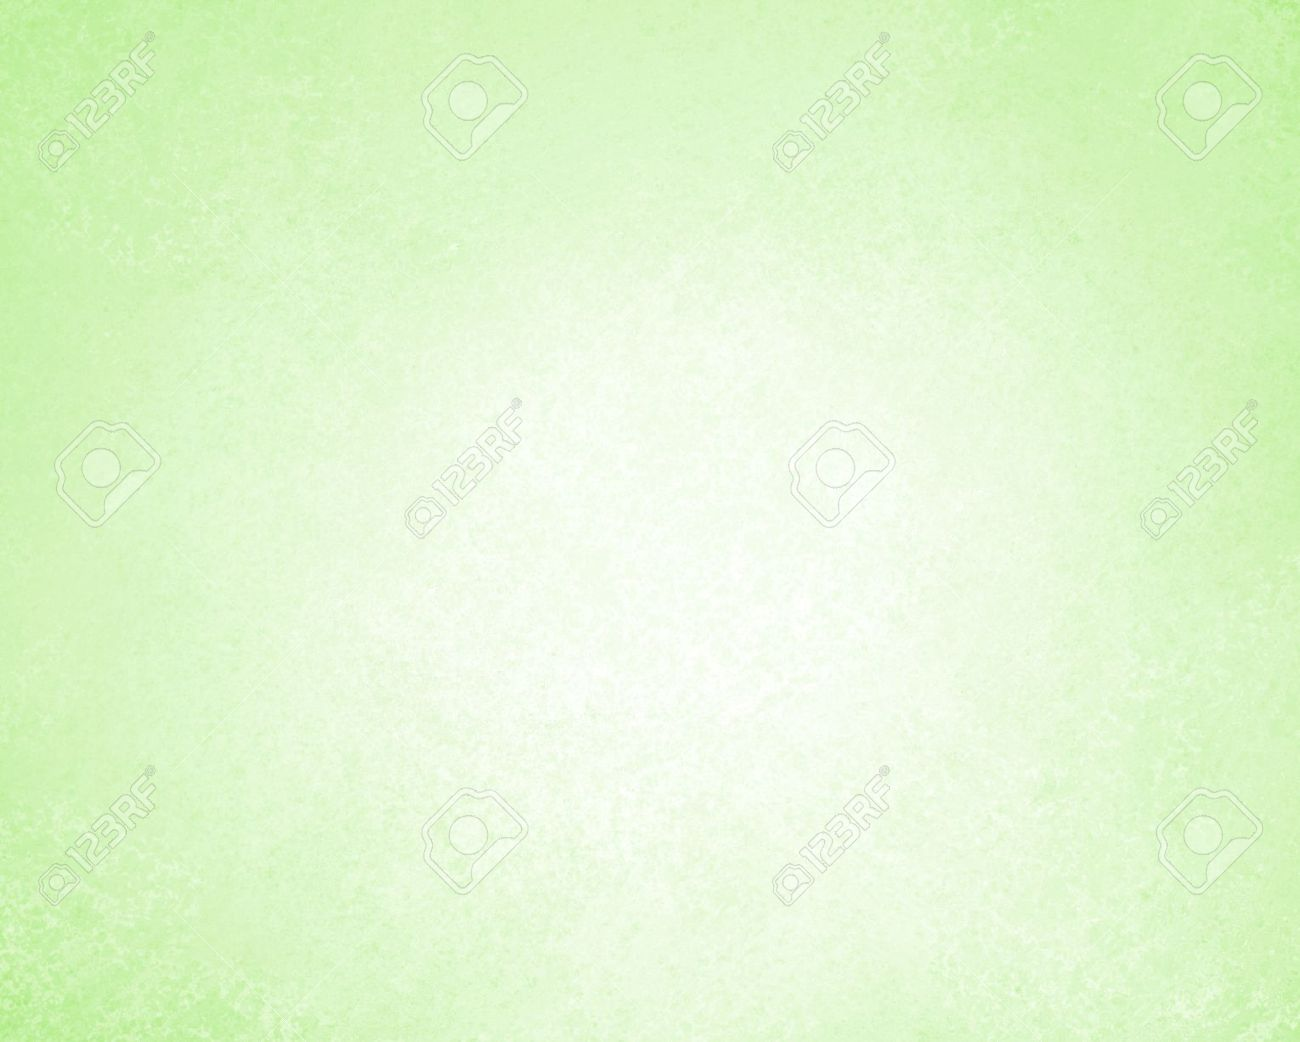 Mint Green Color abstract green background or white background with pastel mint